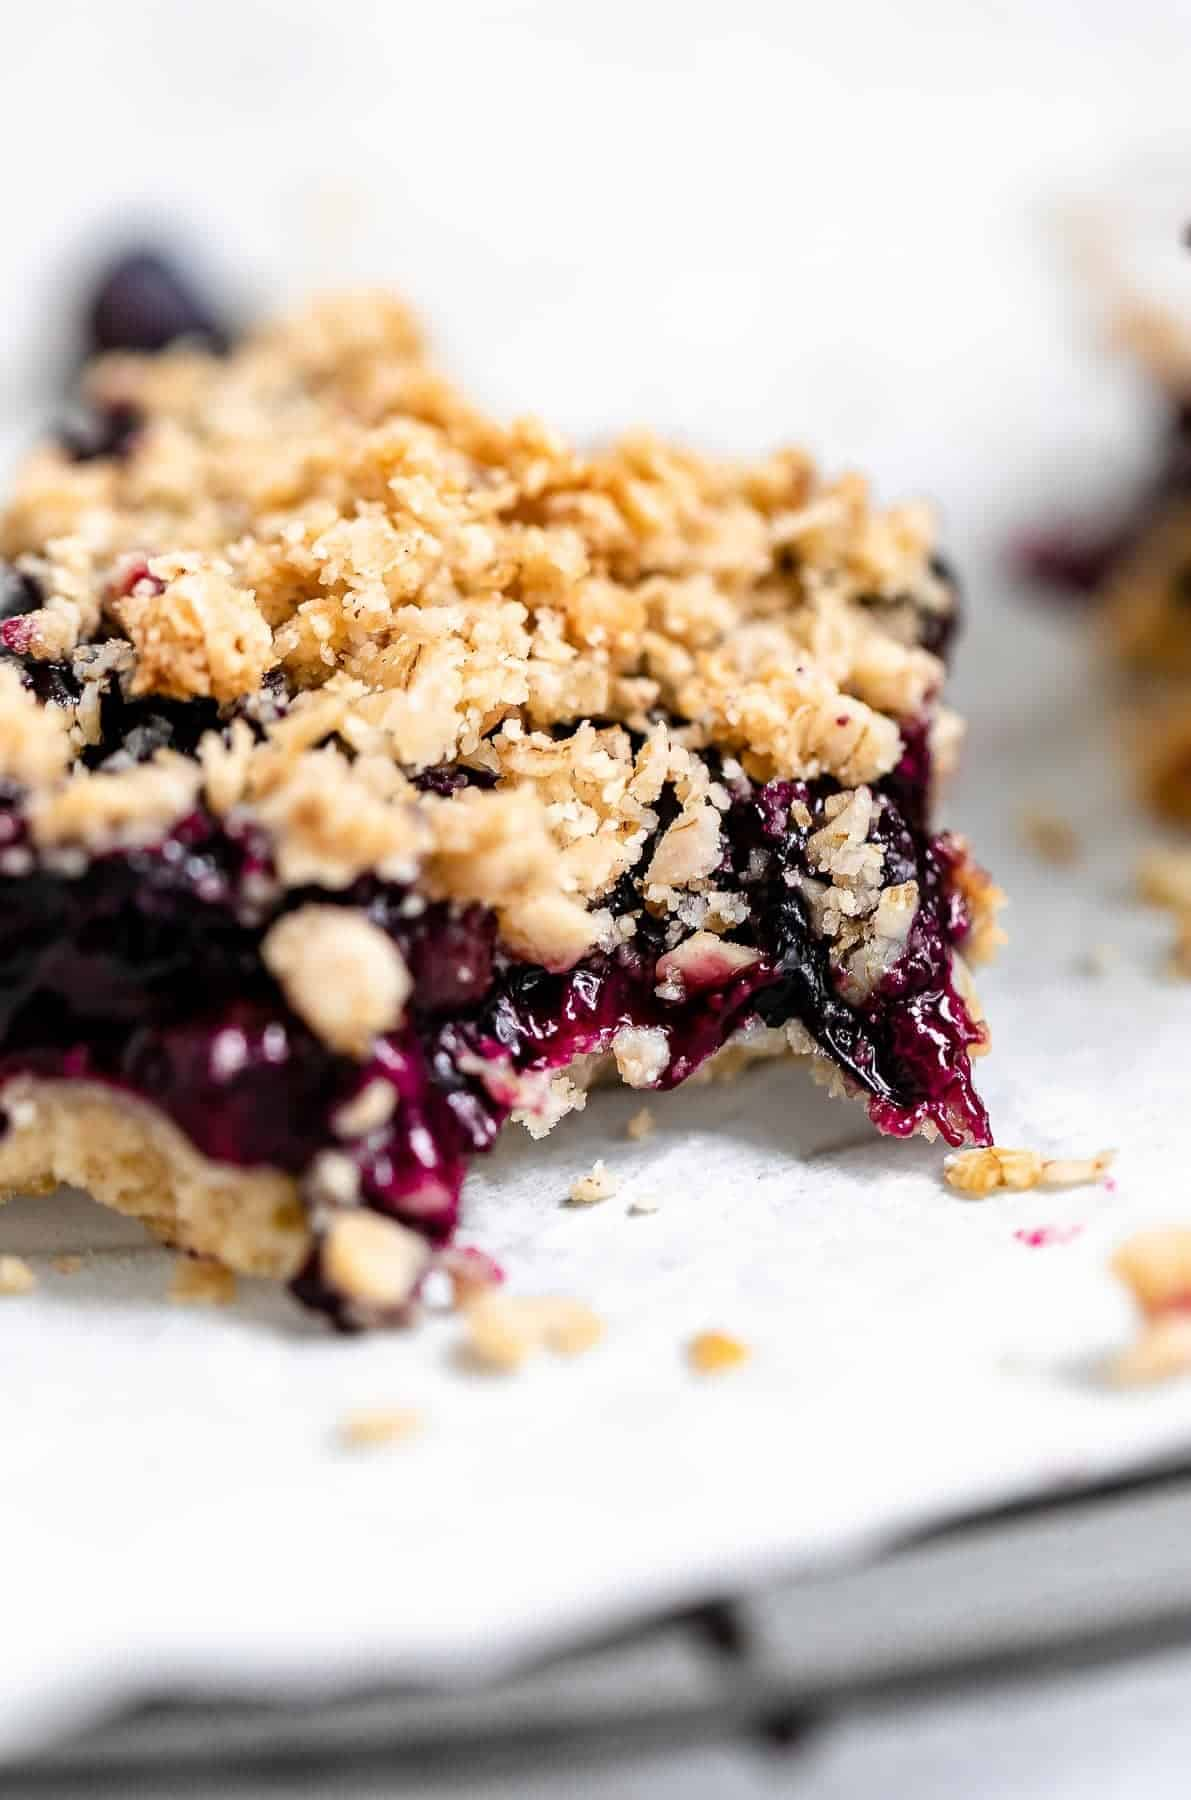 one blueberry crumble bar with a bite taken out